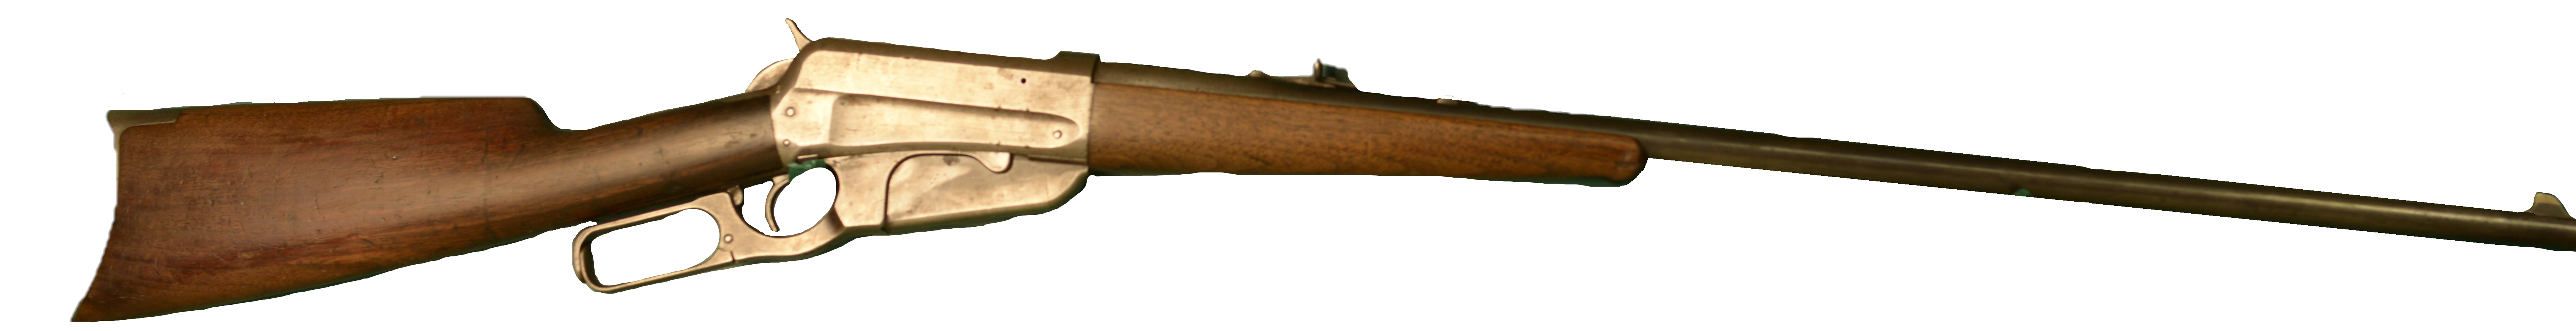 WINCHESTER M1985 .30US LEVER RIFLE SS11572